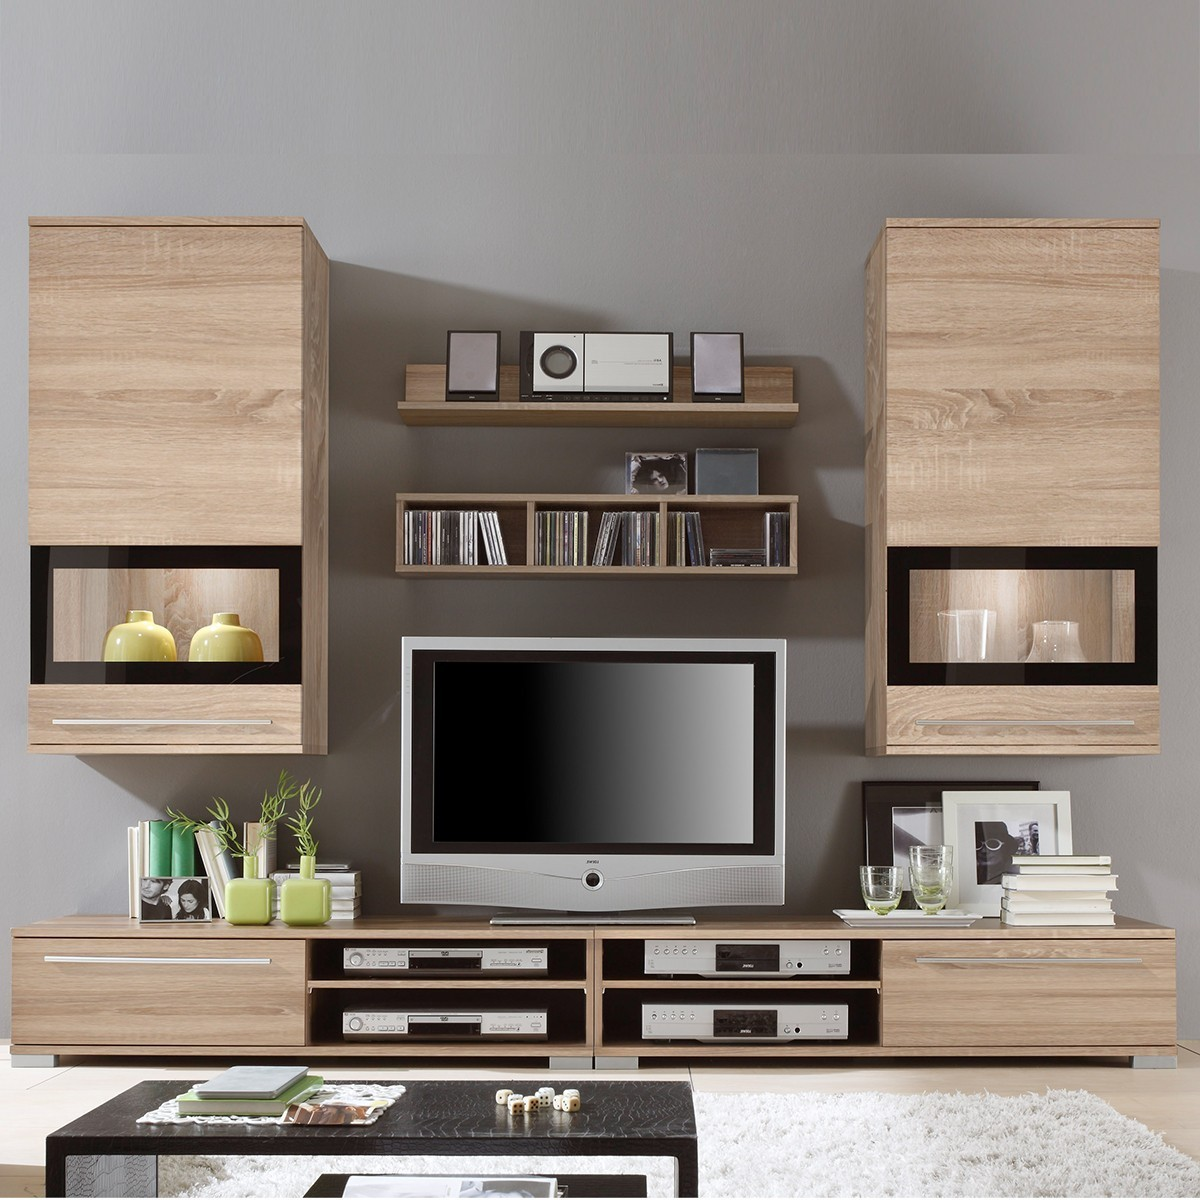 leonardo wohnwand preis interessante ideen. Black Bedroom Furniture Sets. Home Design Ideas